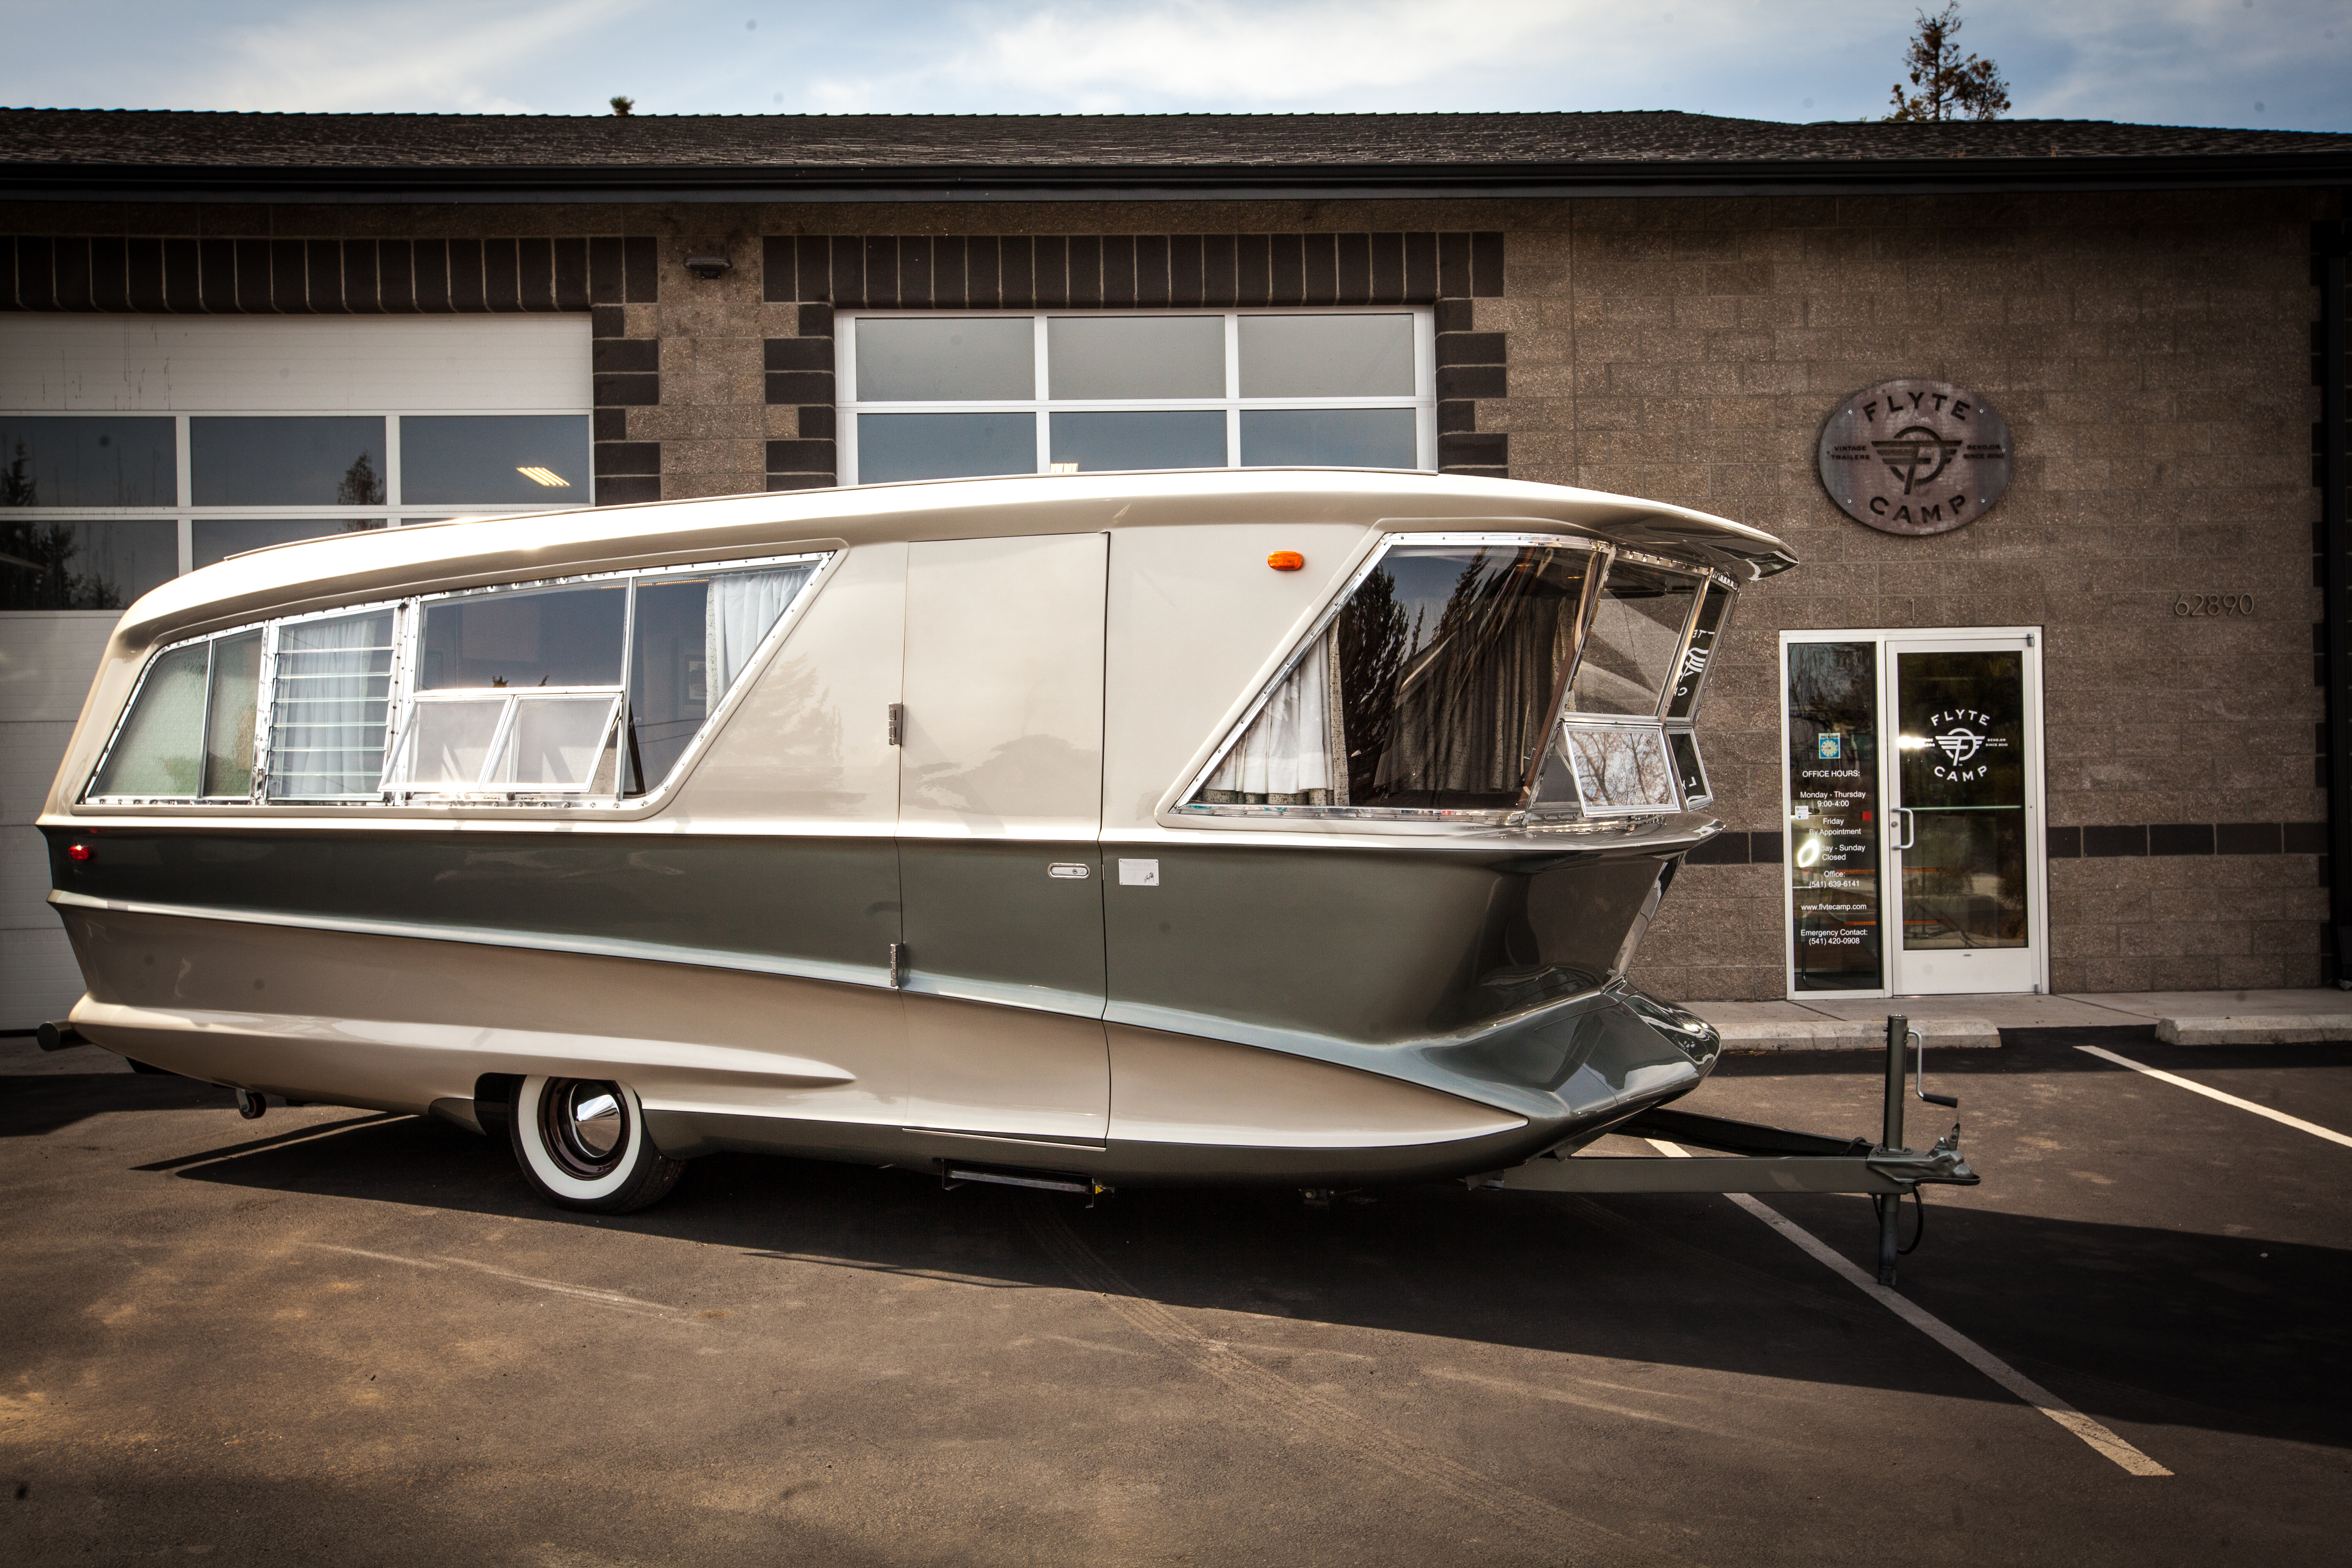 Glamorous vintage camper is your midcentury dream home on wheels